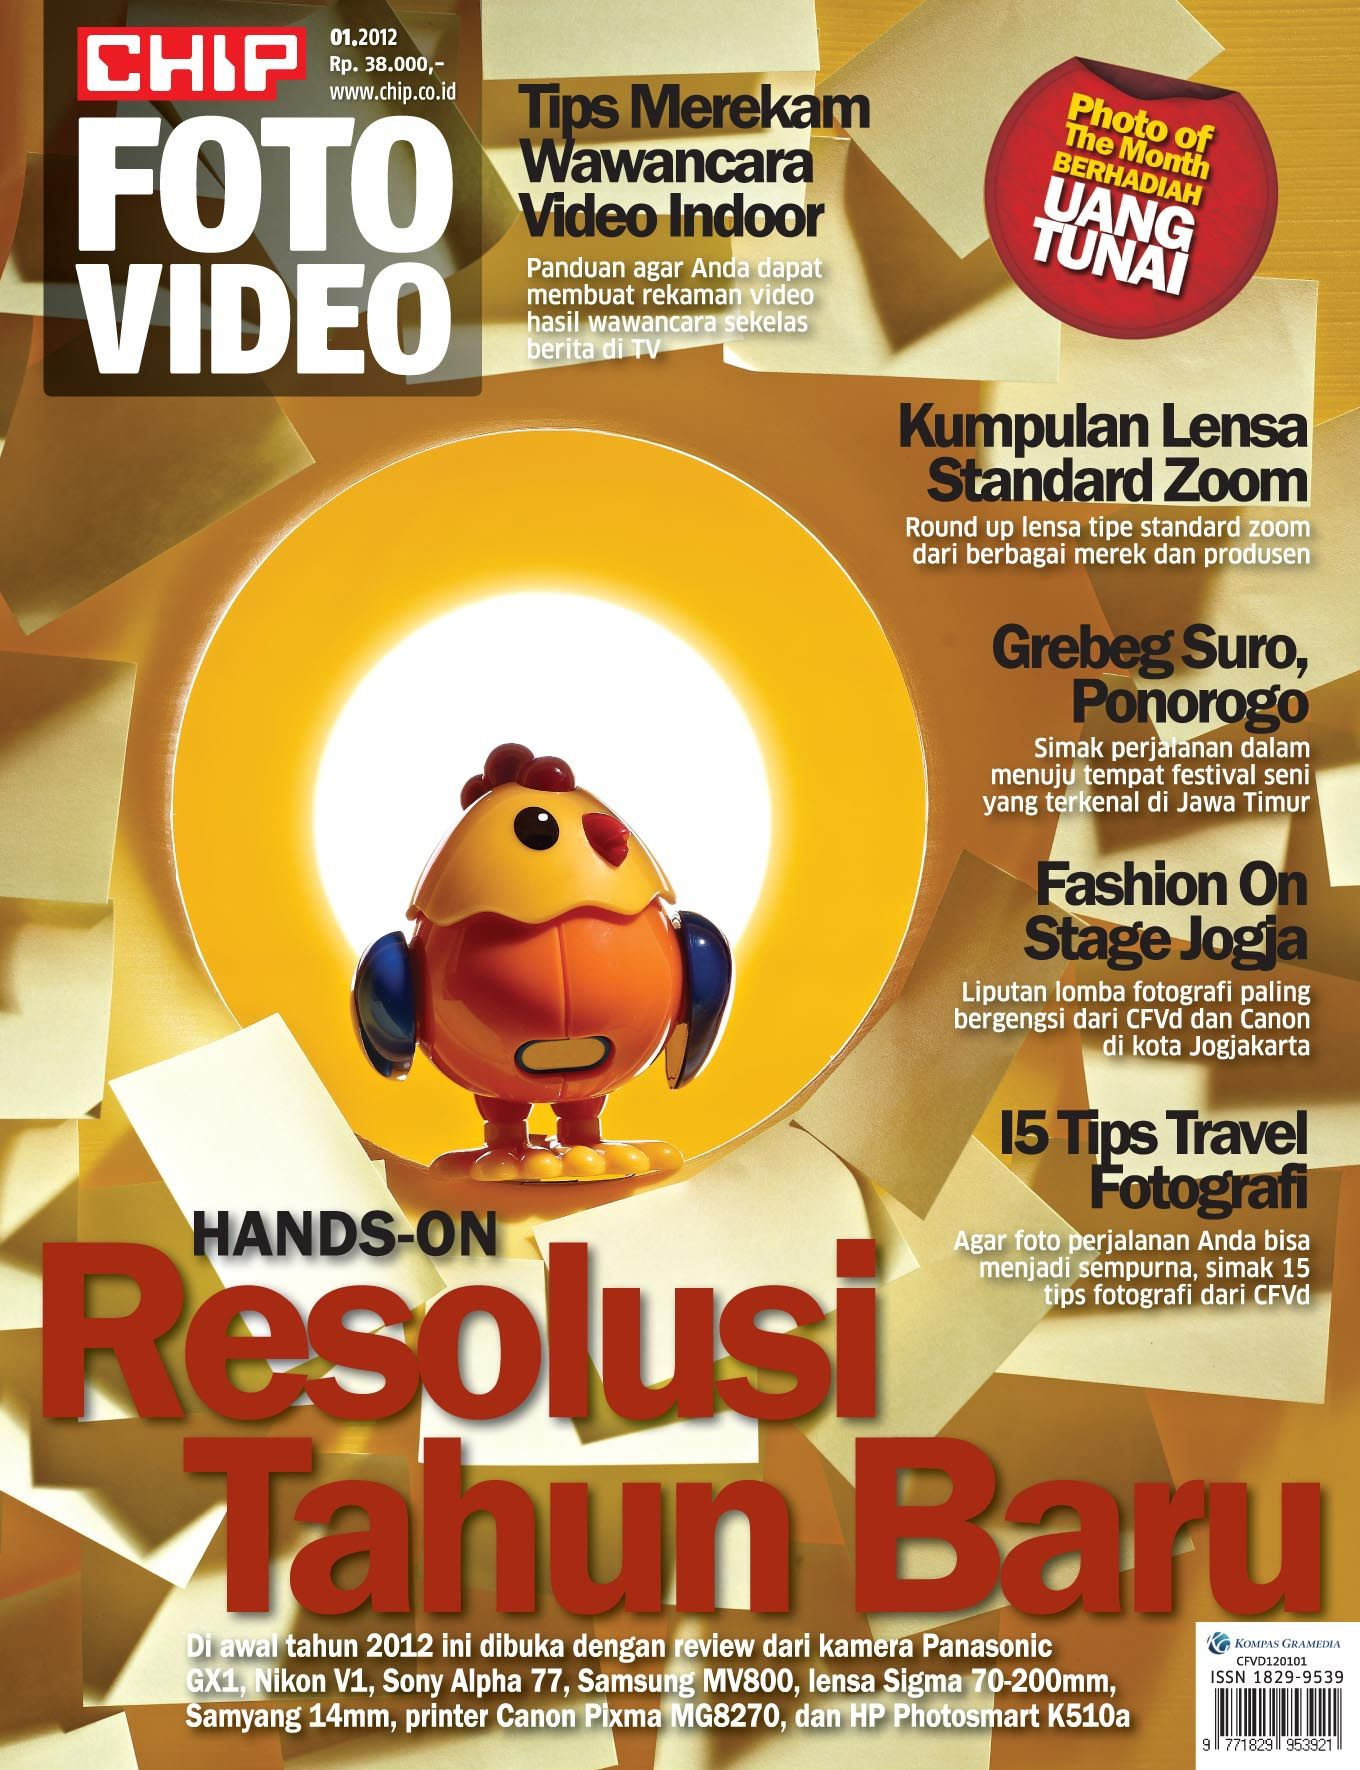 CHIP Foto Video Reguler edisi 01 2012